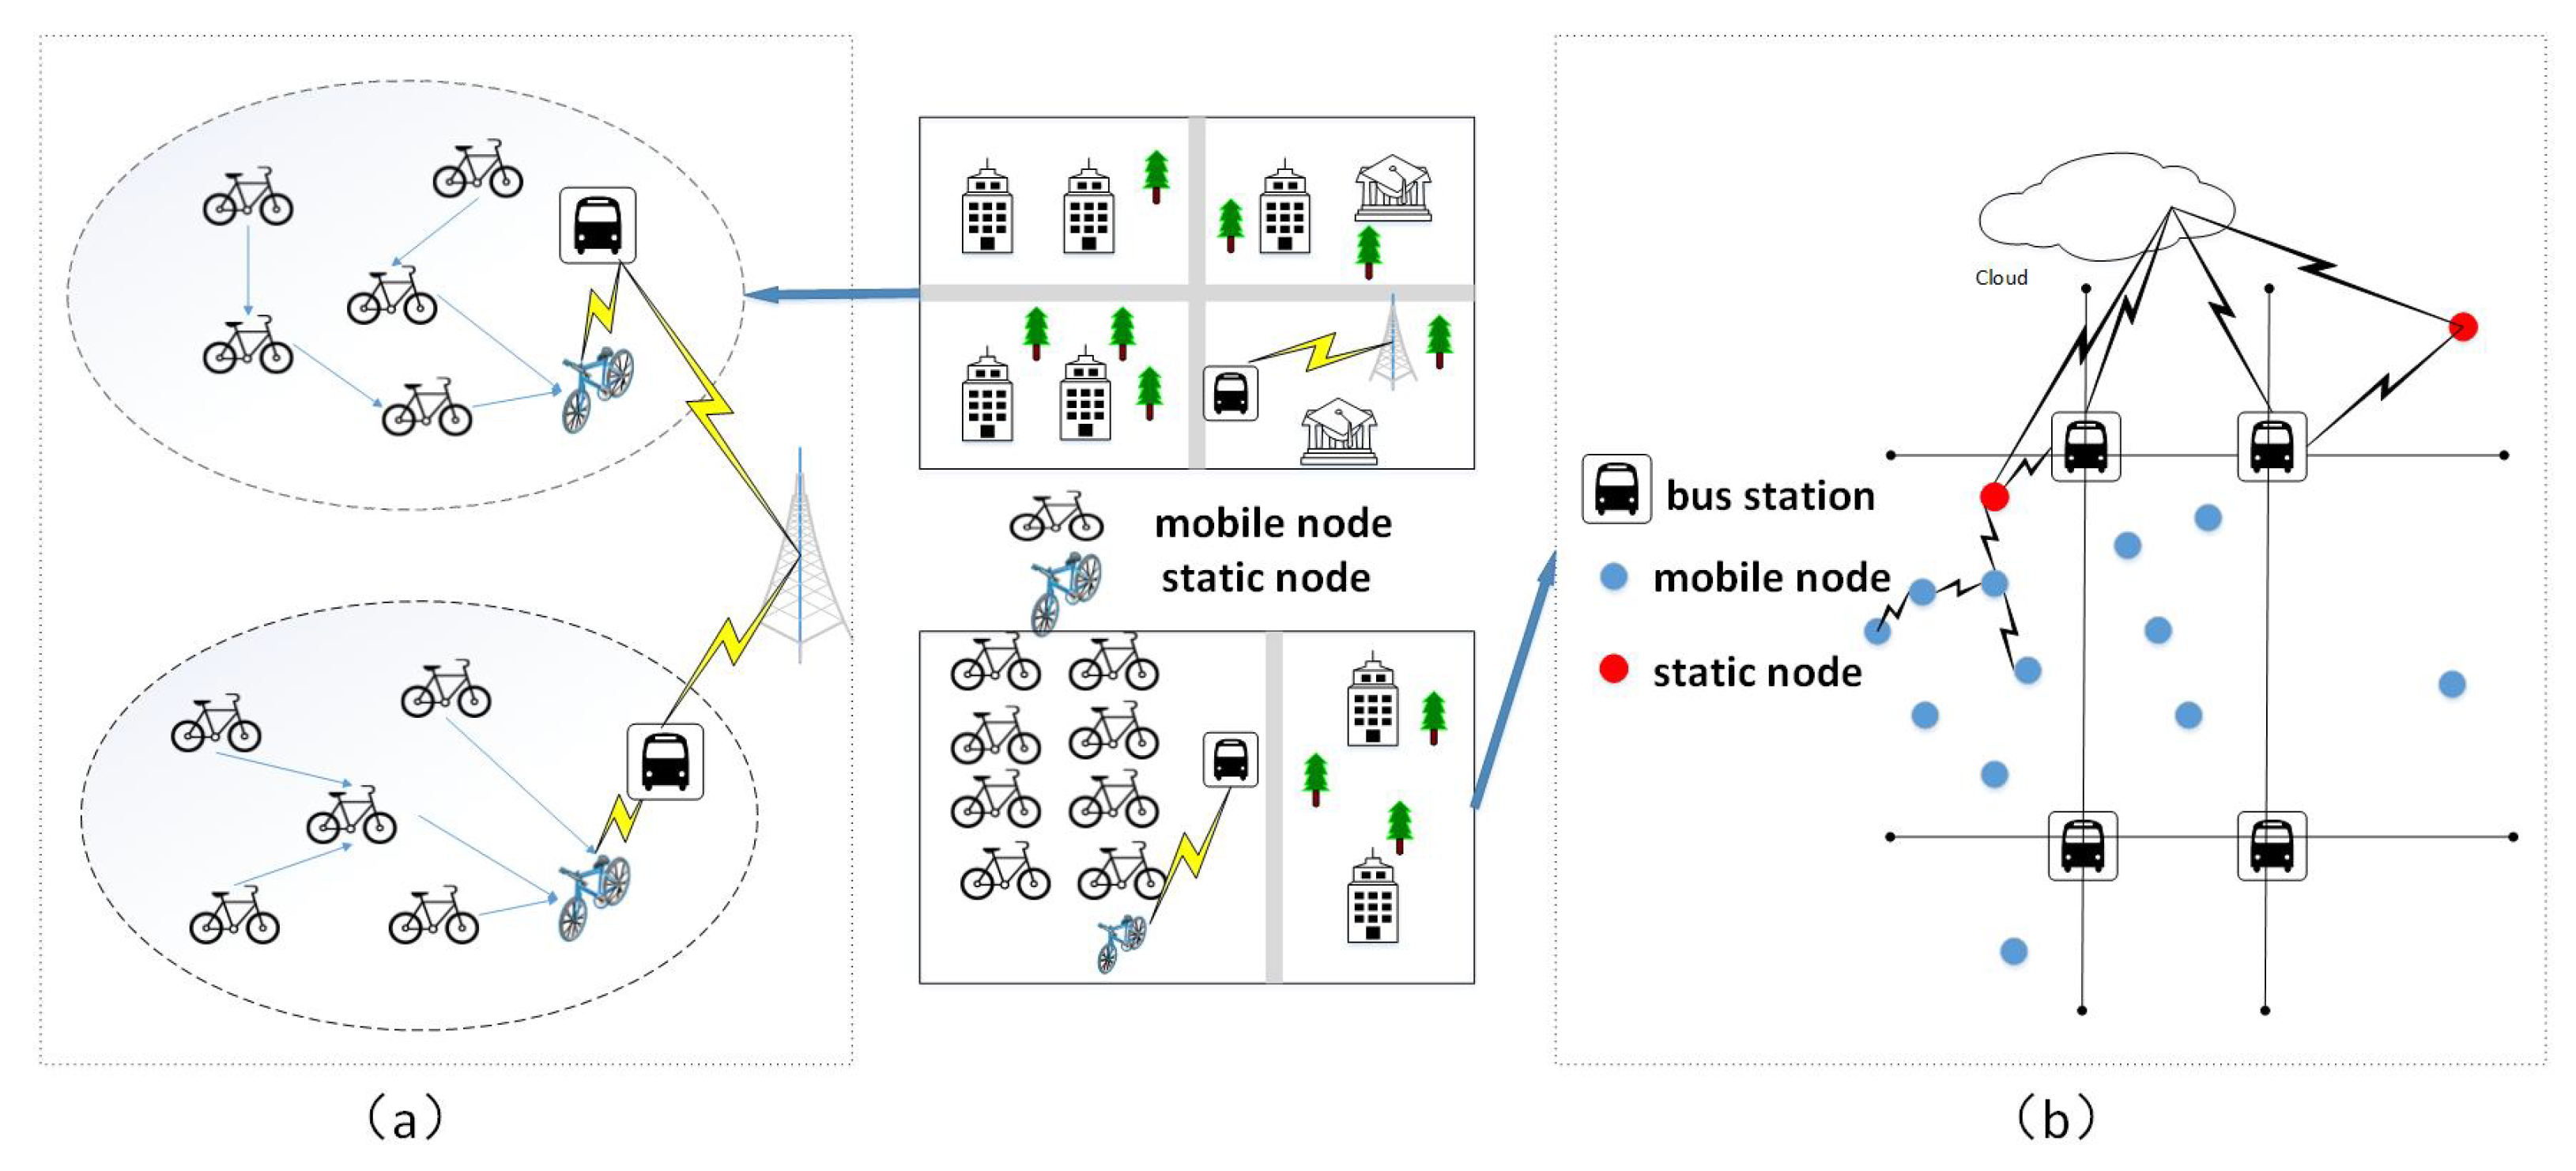 Sensors | Free Full-Text | The Shared Bicycle and Its Network